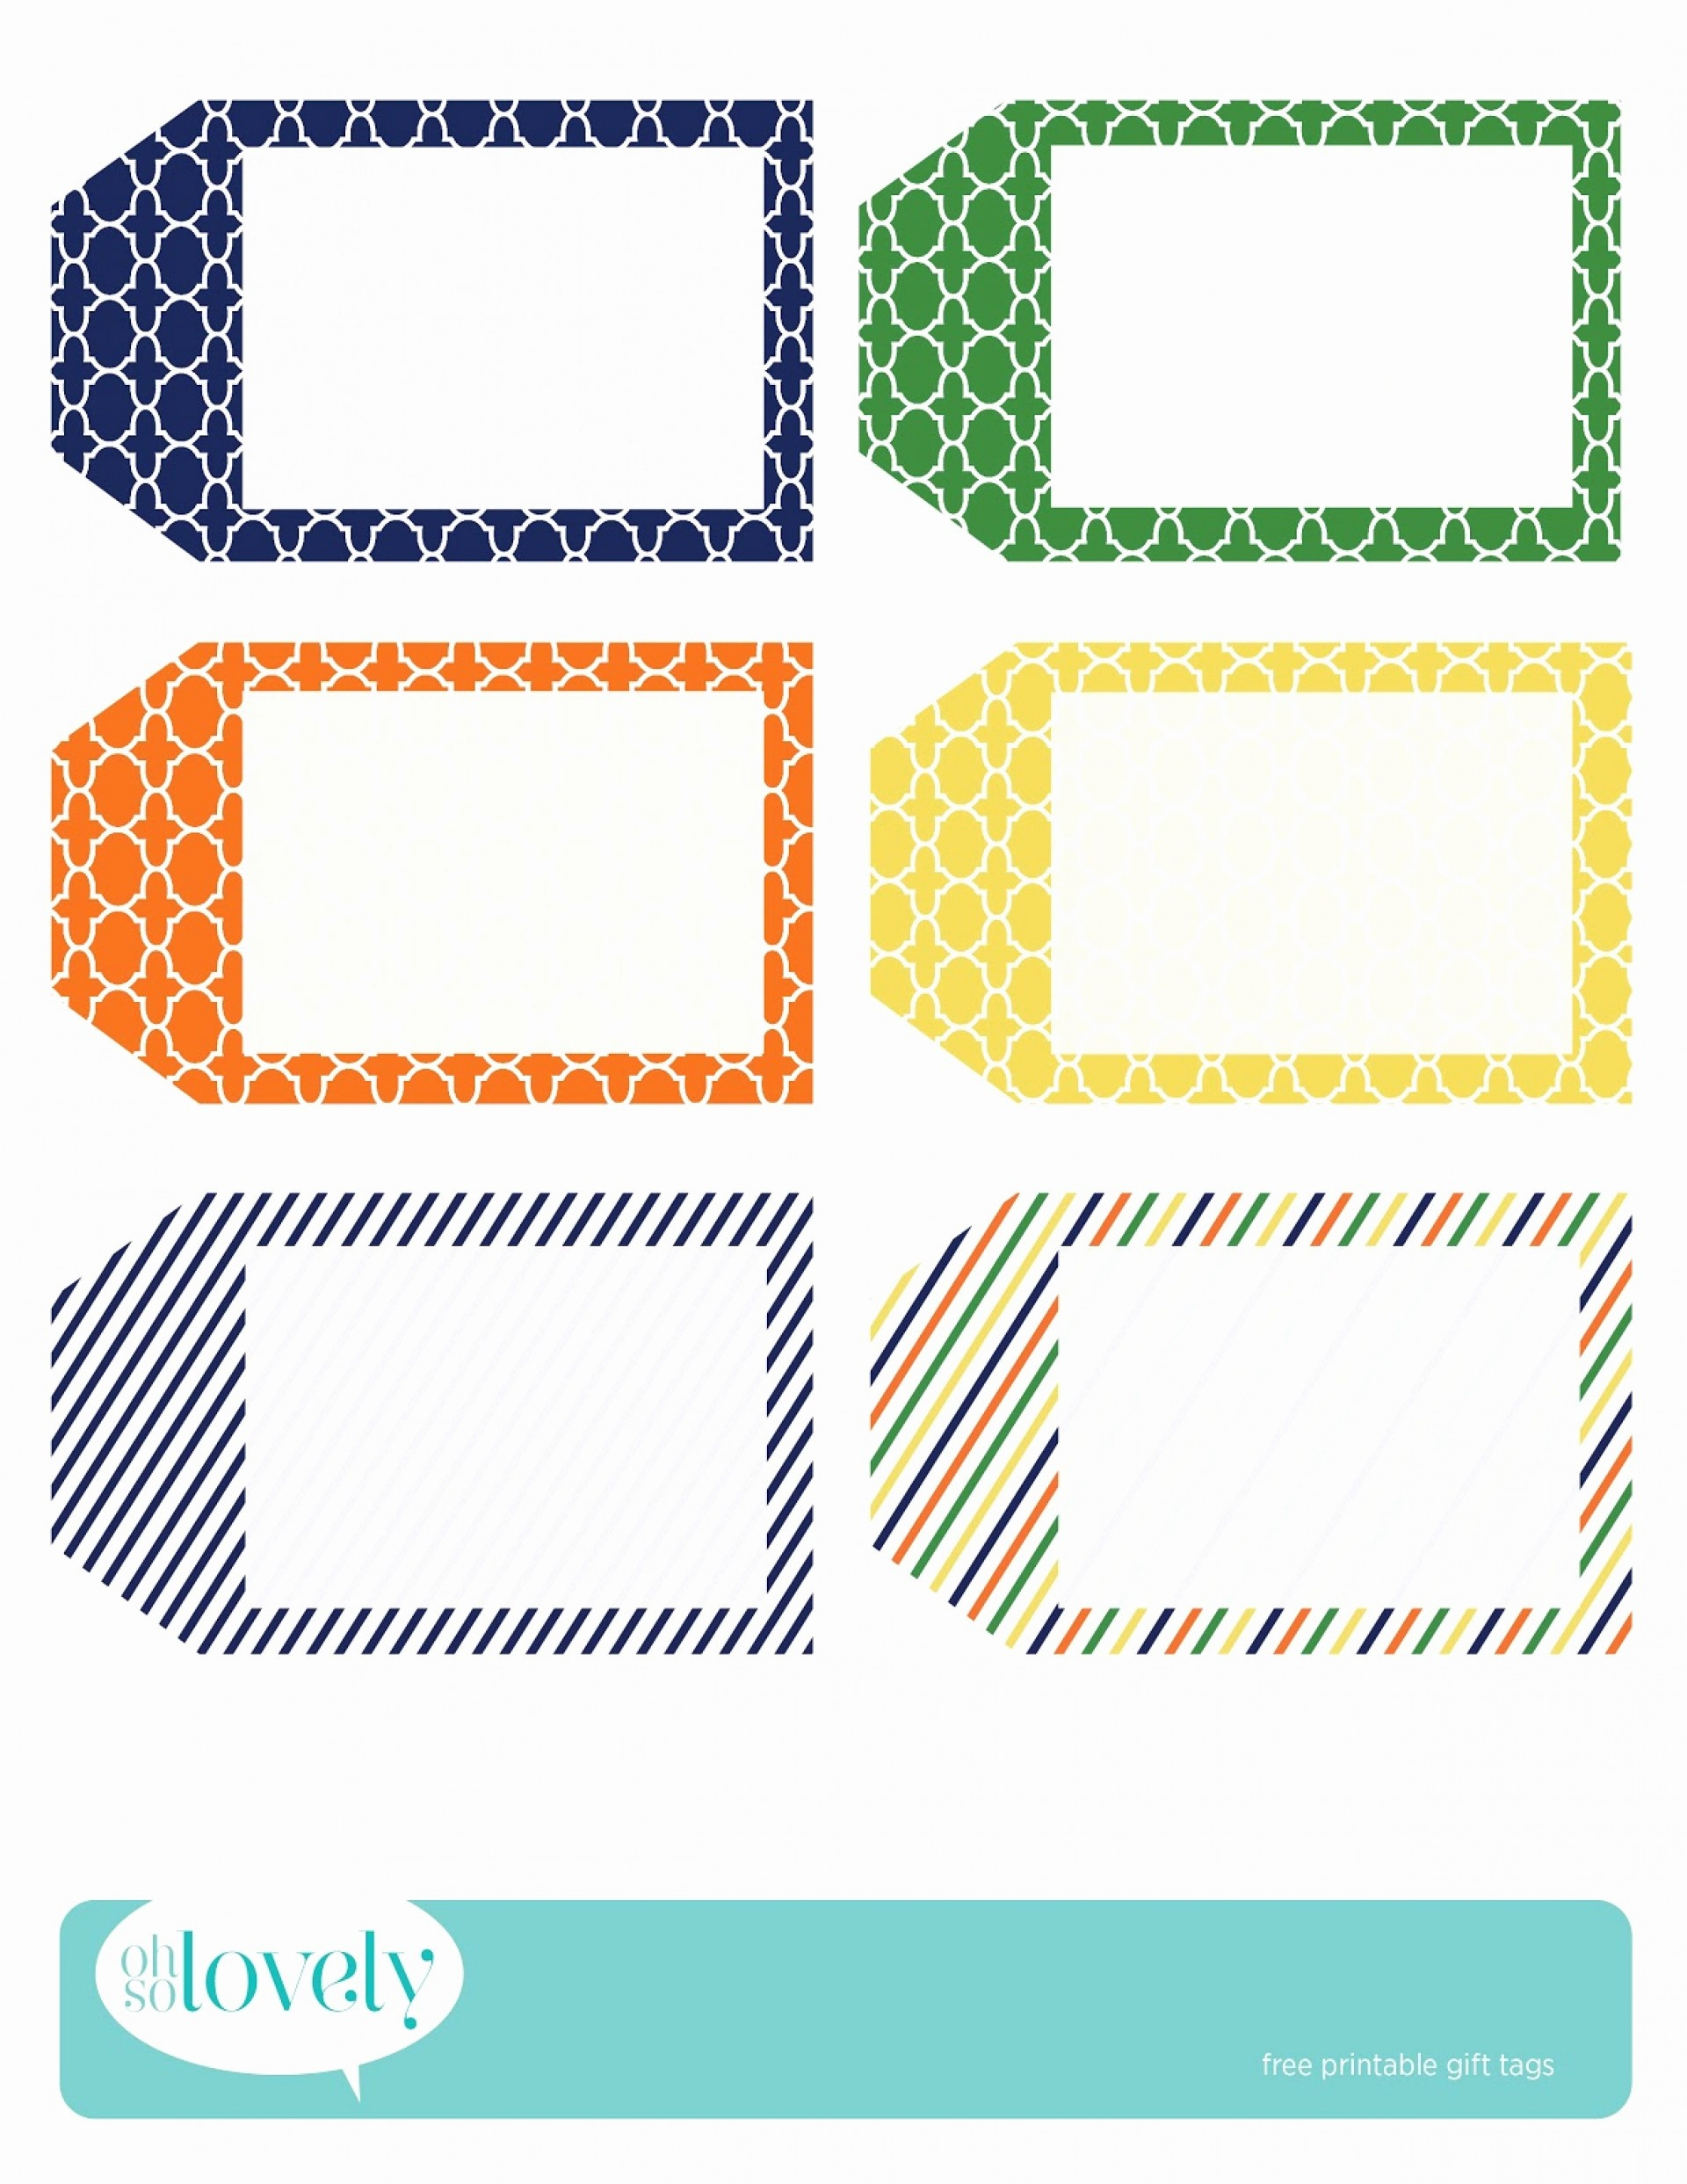 018 Free Printable Tag Templates Fresh Best Of Gift Tags With - Free Printable Birthday Tag Templates